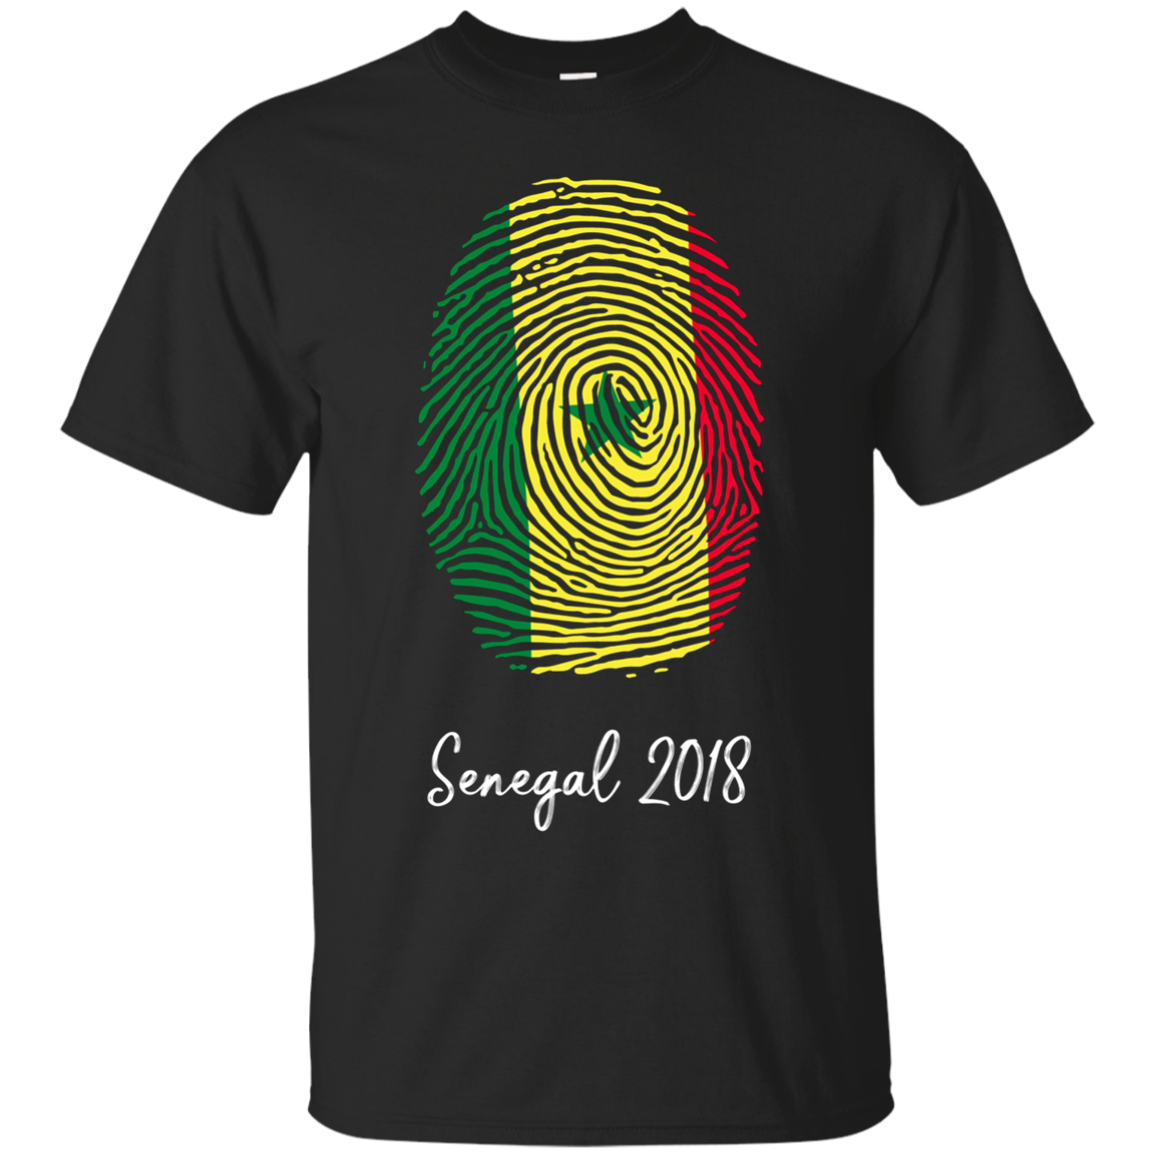 Senegal Shirt 2018 Thumbprint Soccer Flag Design